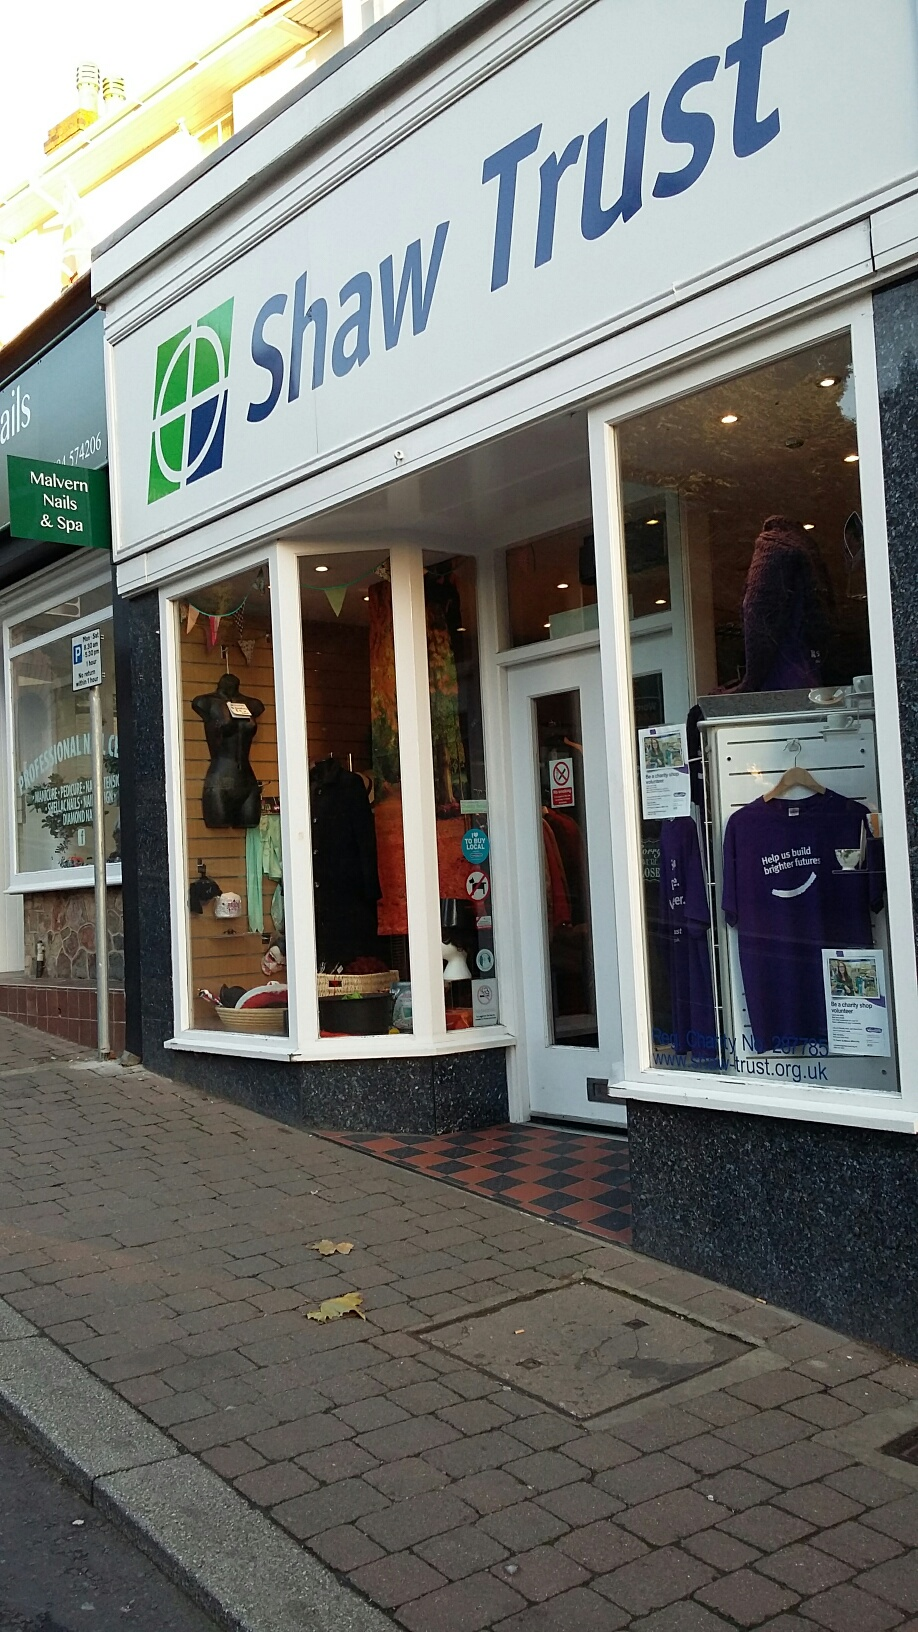 Shaw Trust - Charity shop - Malvern - Malvern, Worcestershire WR14 2AA - 01684 893477 | ShowMeLocal.com